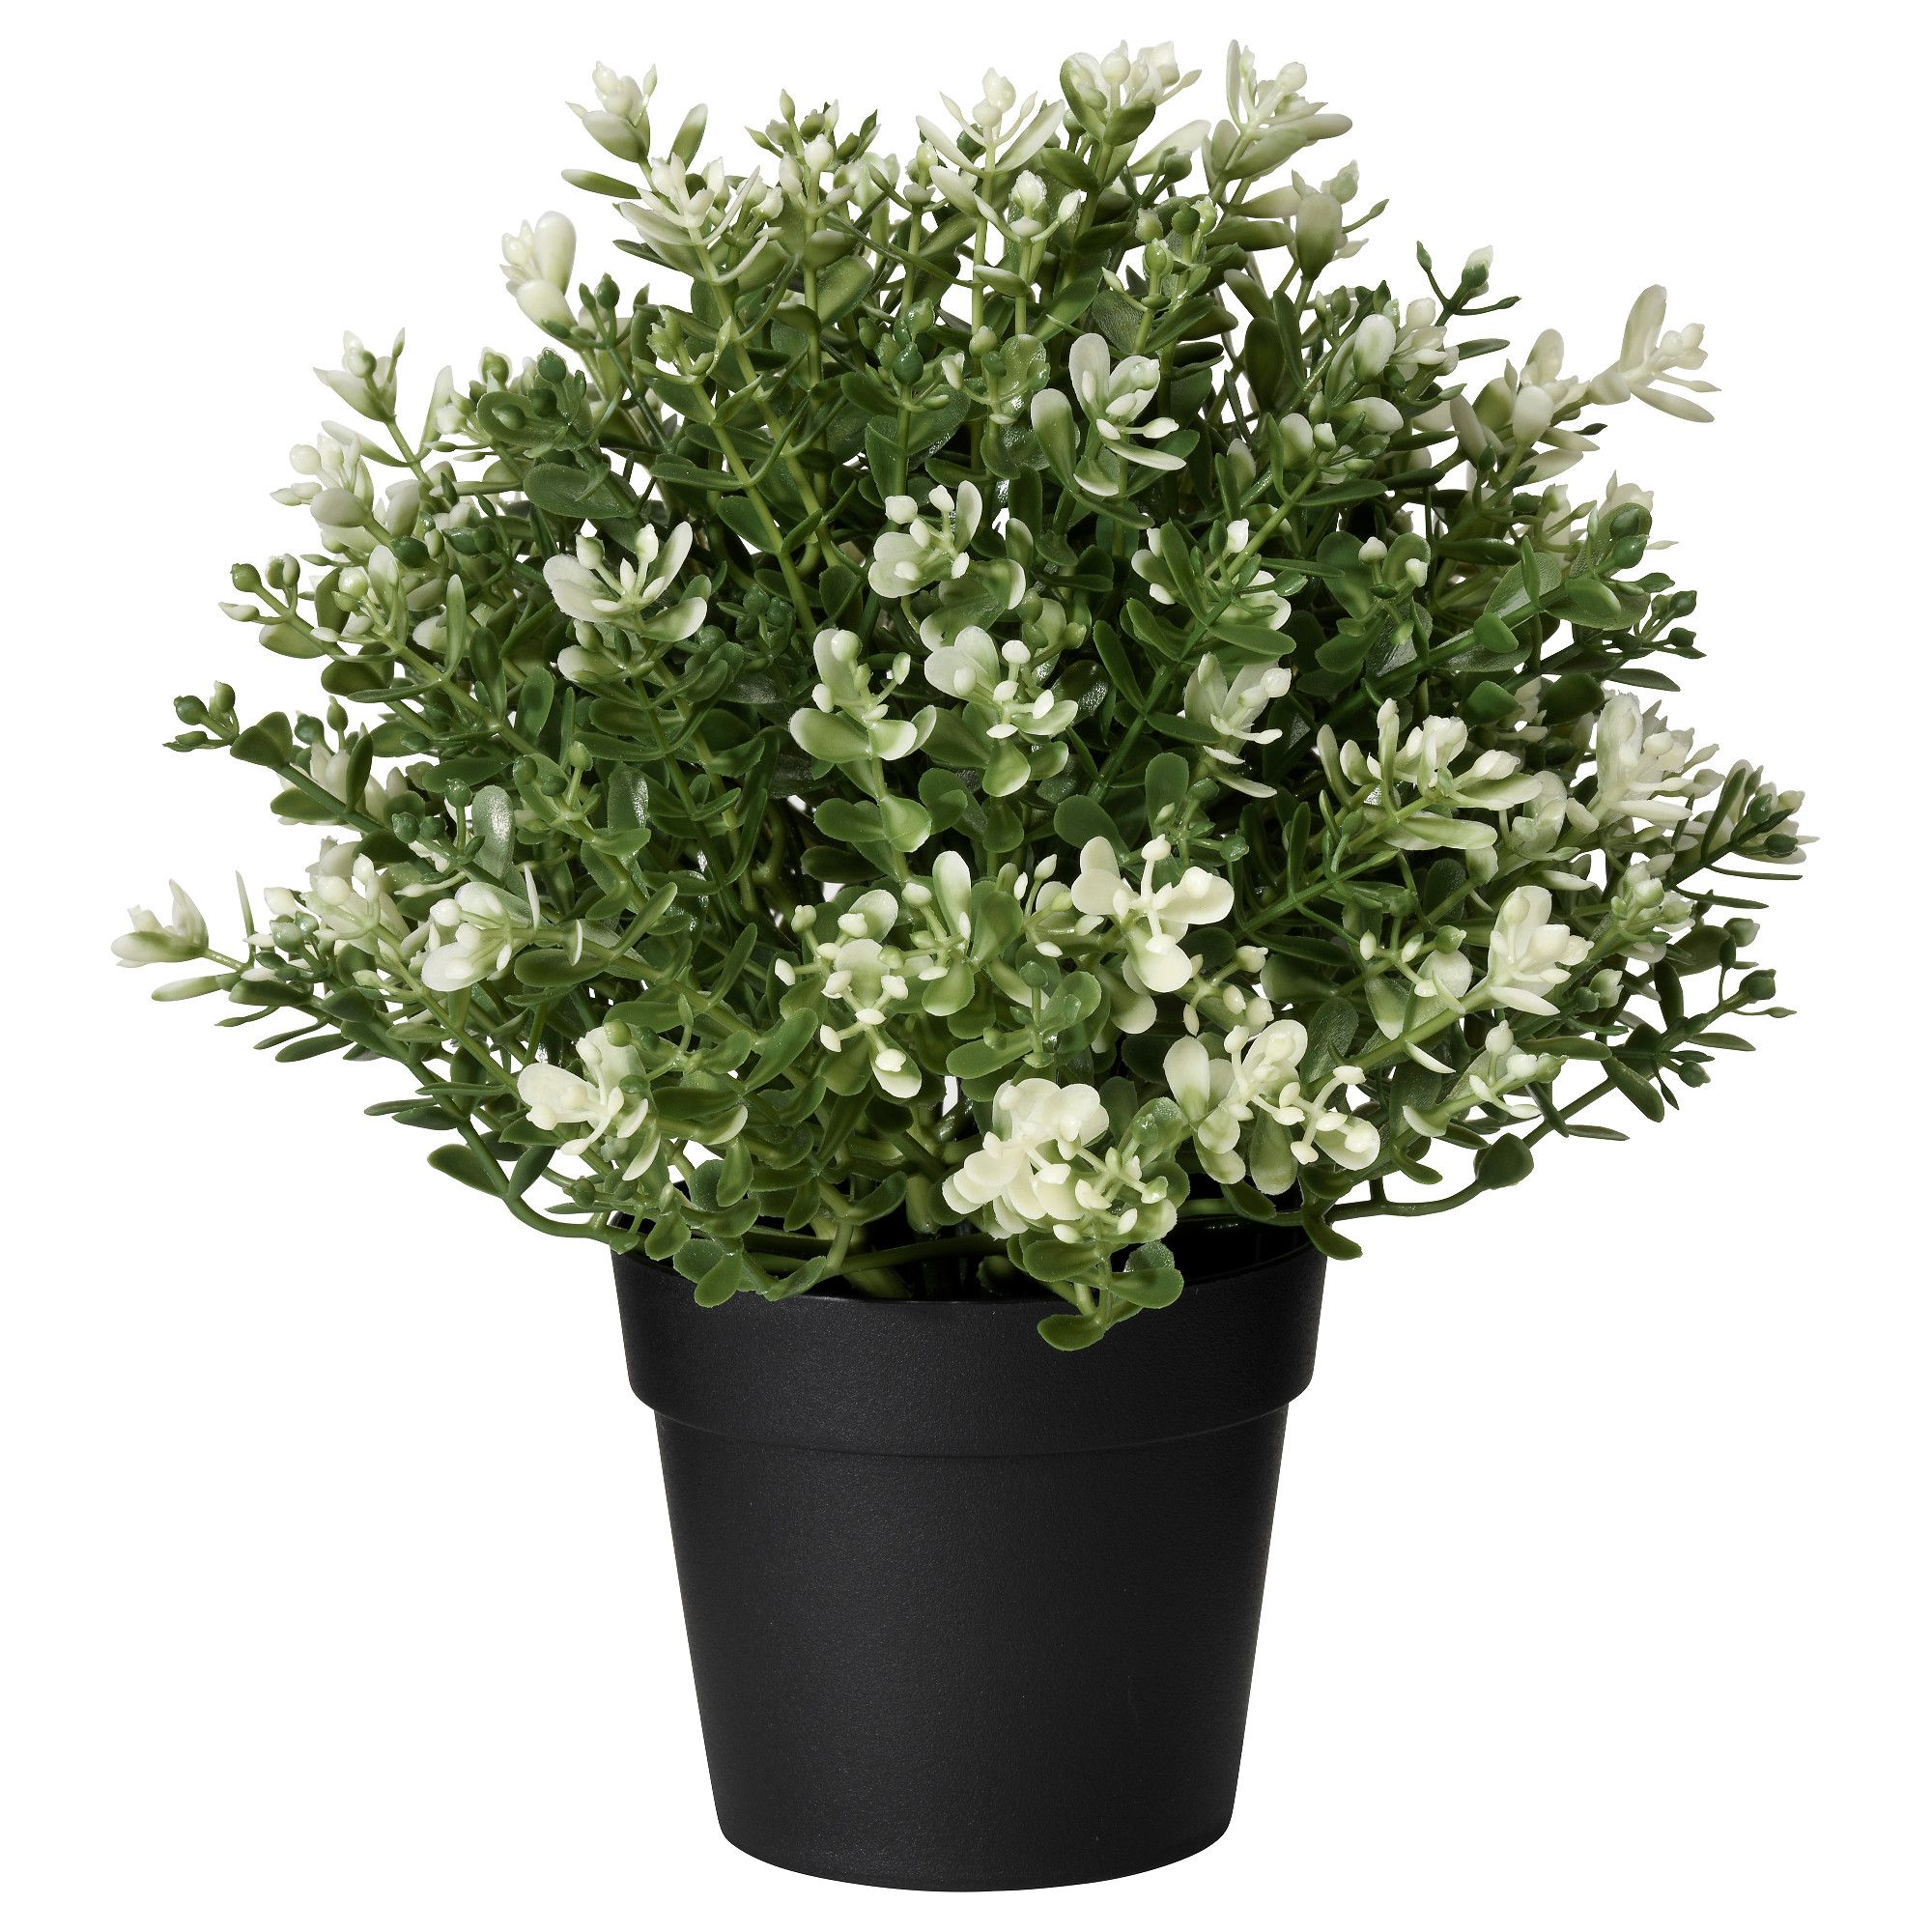 Fejka Artificial Potted Plant Thyme Ikea Artificial Potted Plants Artificial Plants Outdoor Small Artificial Plants